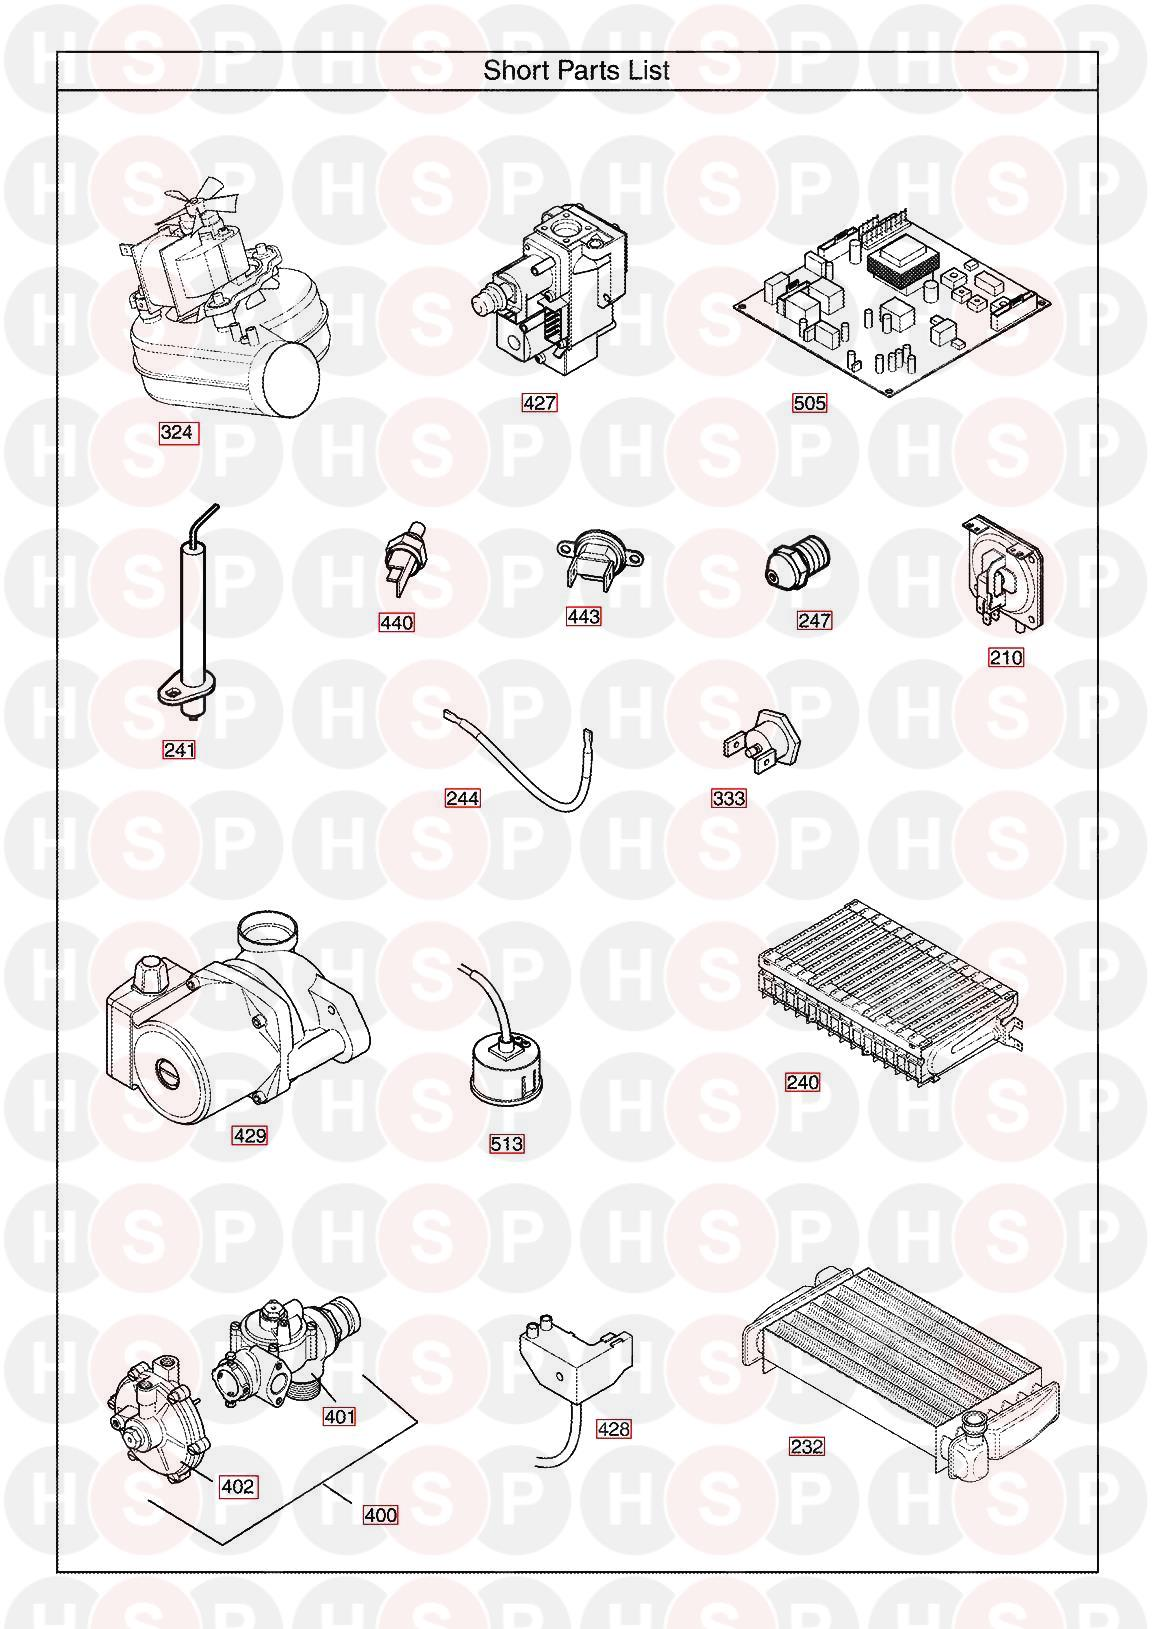 baxi combi 105he appliance diagram  short parts list